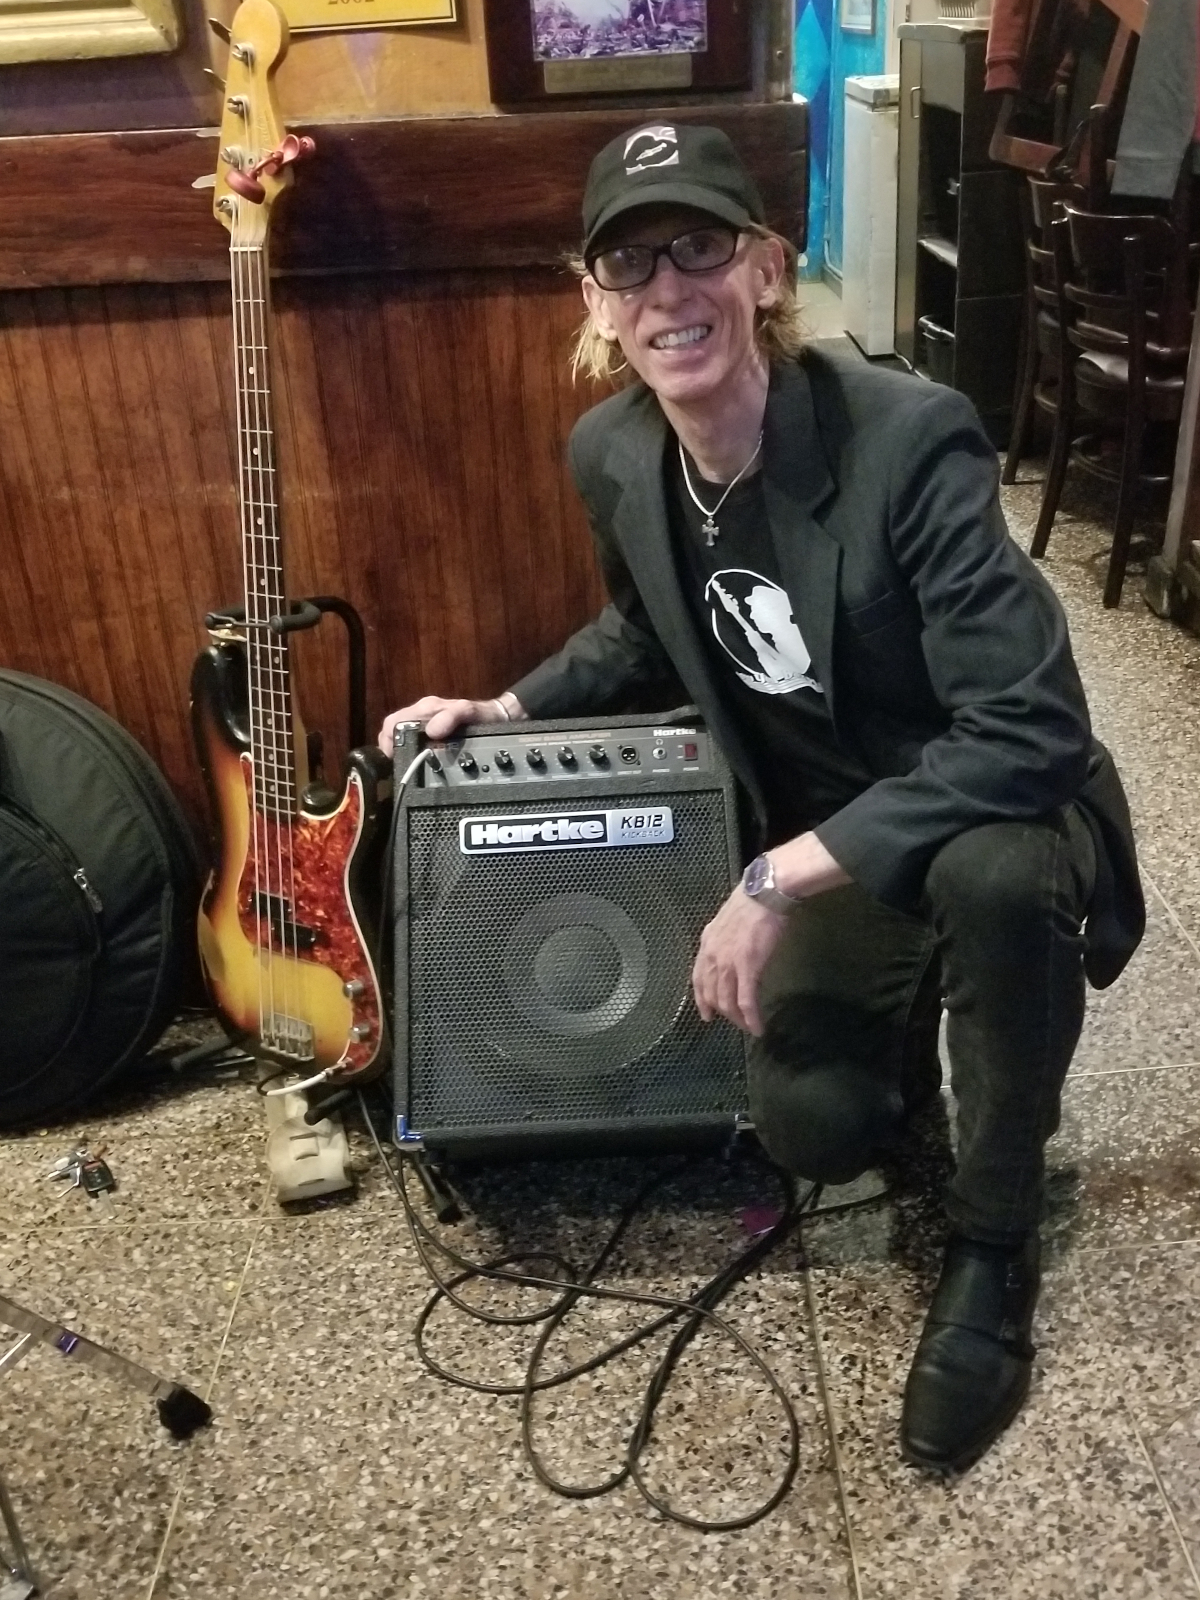 mike muller with his new hartke kickback 12 bass amp